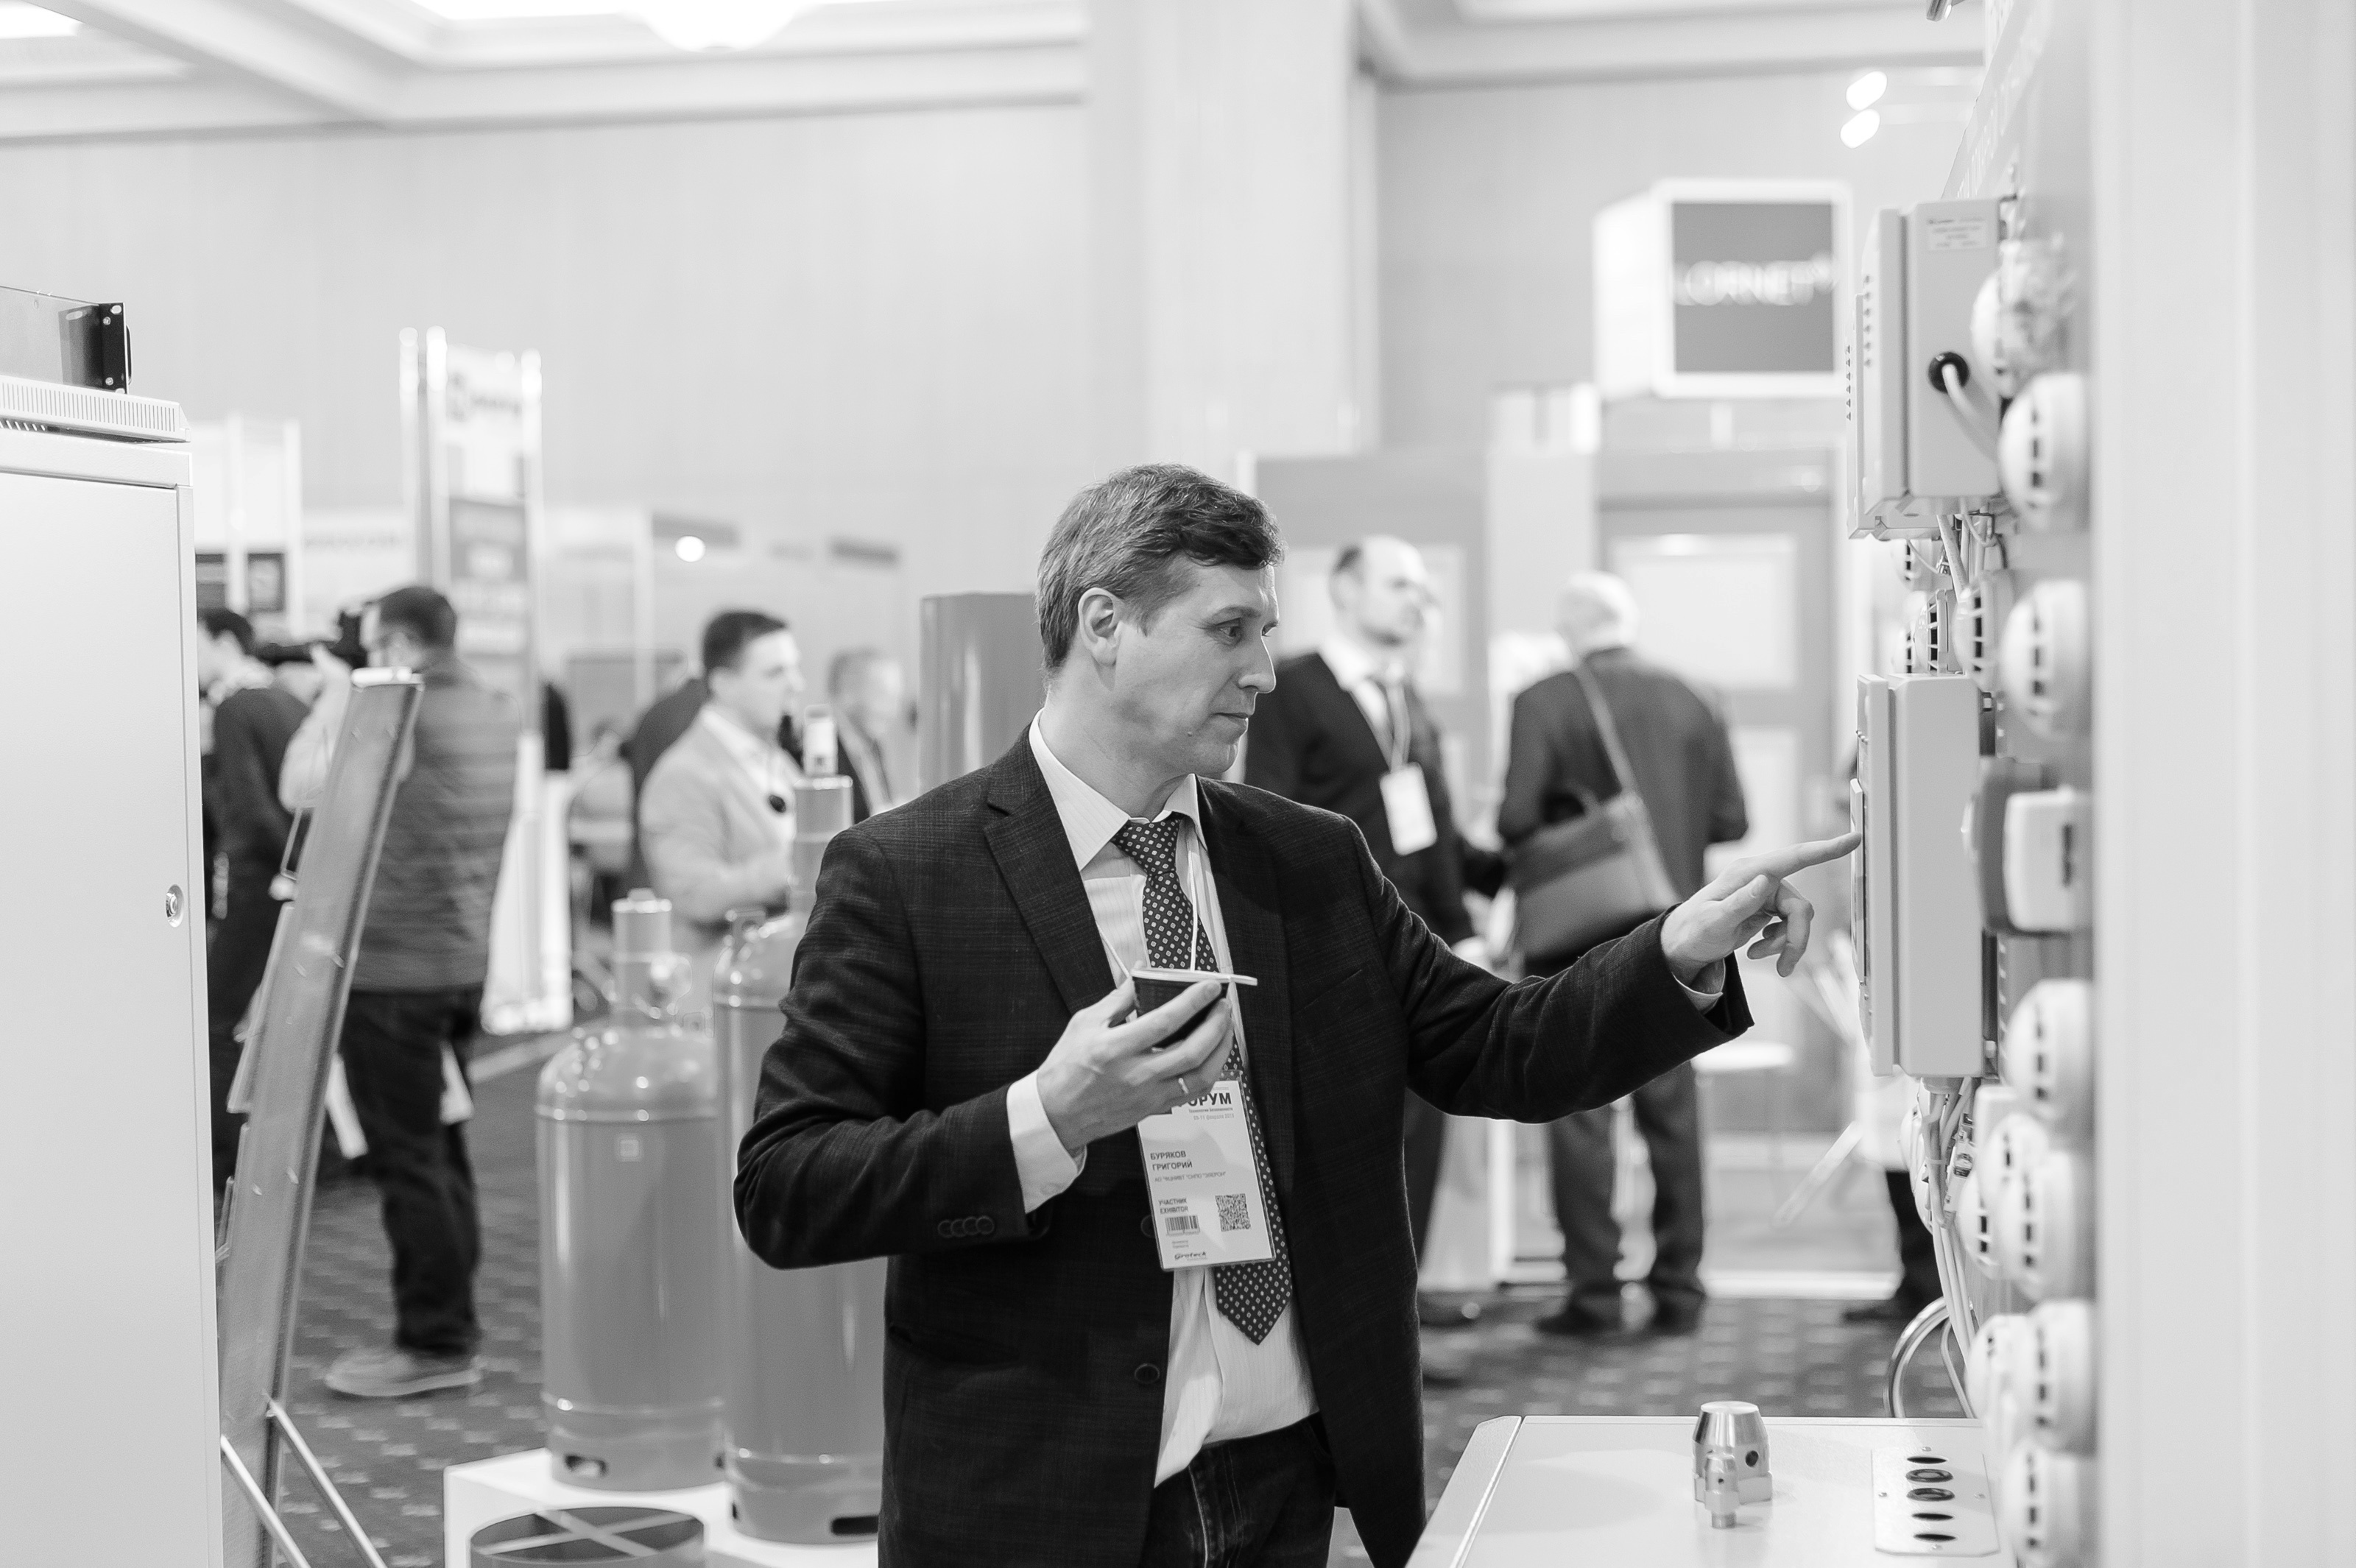 Oil, Gas and Industry: Meeting with integrators and security directors at TB Forum 2017